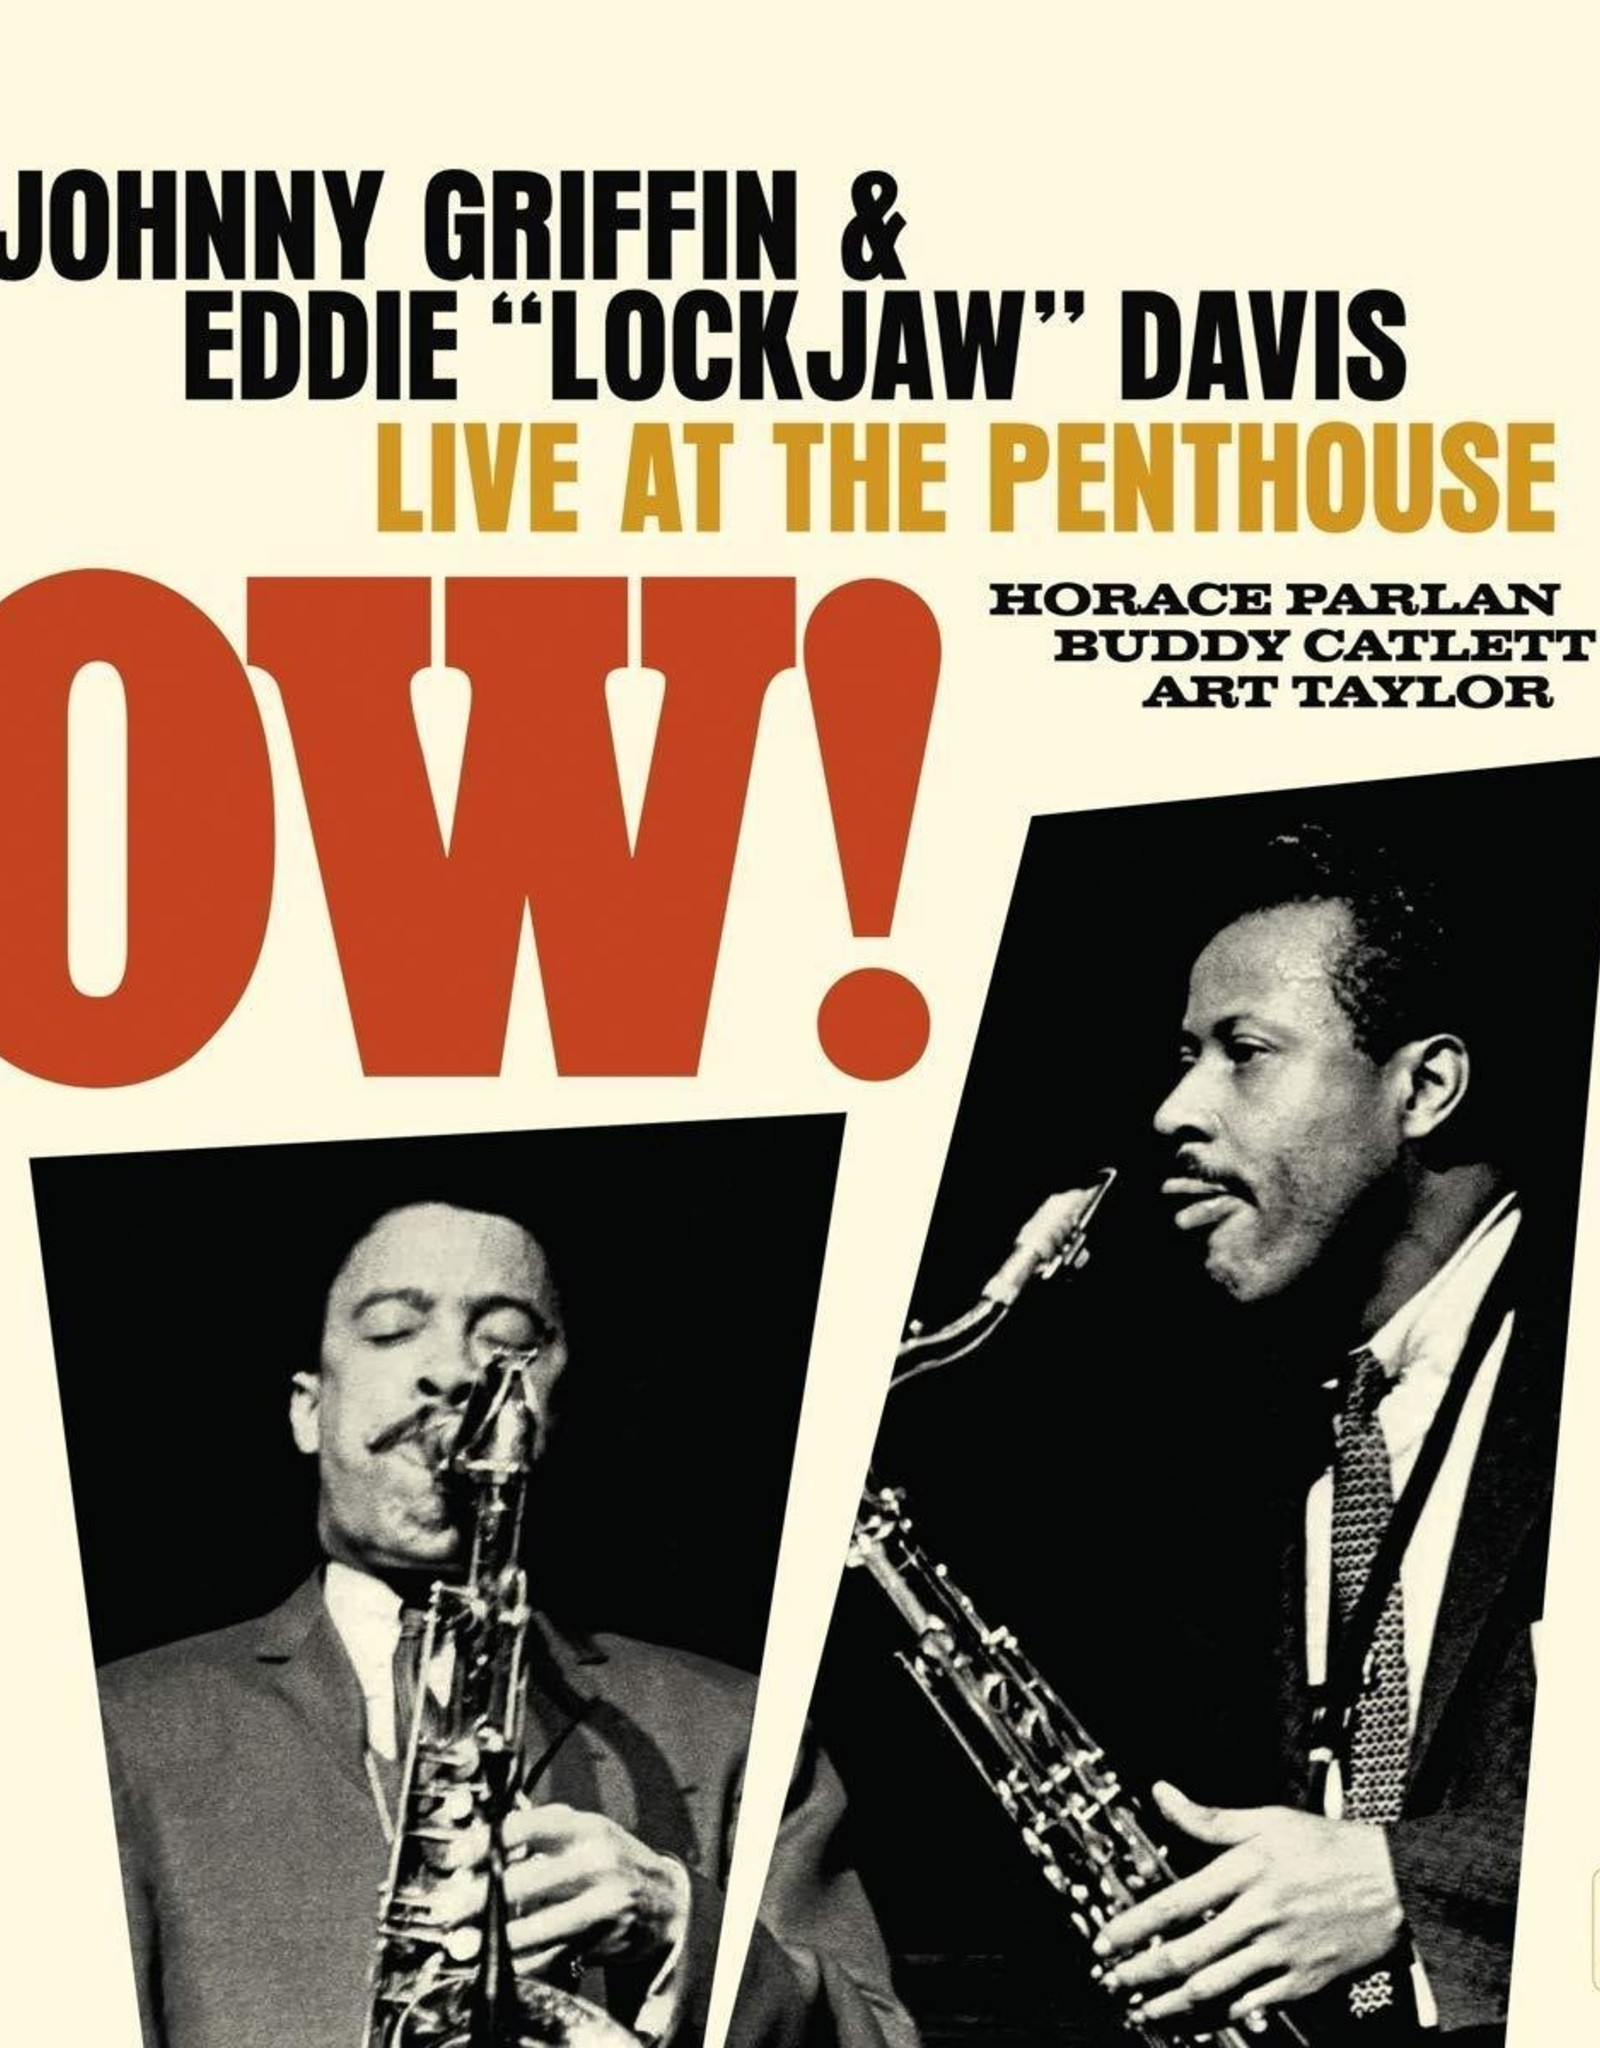 Johnny Griffin & Eddie Davis - Ow! Live At The Penthouse (1962) (180G) (Rsd 2019)